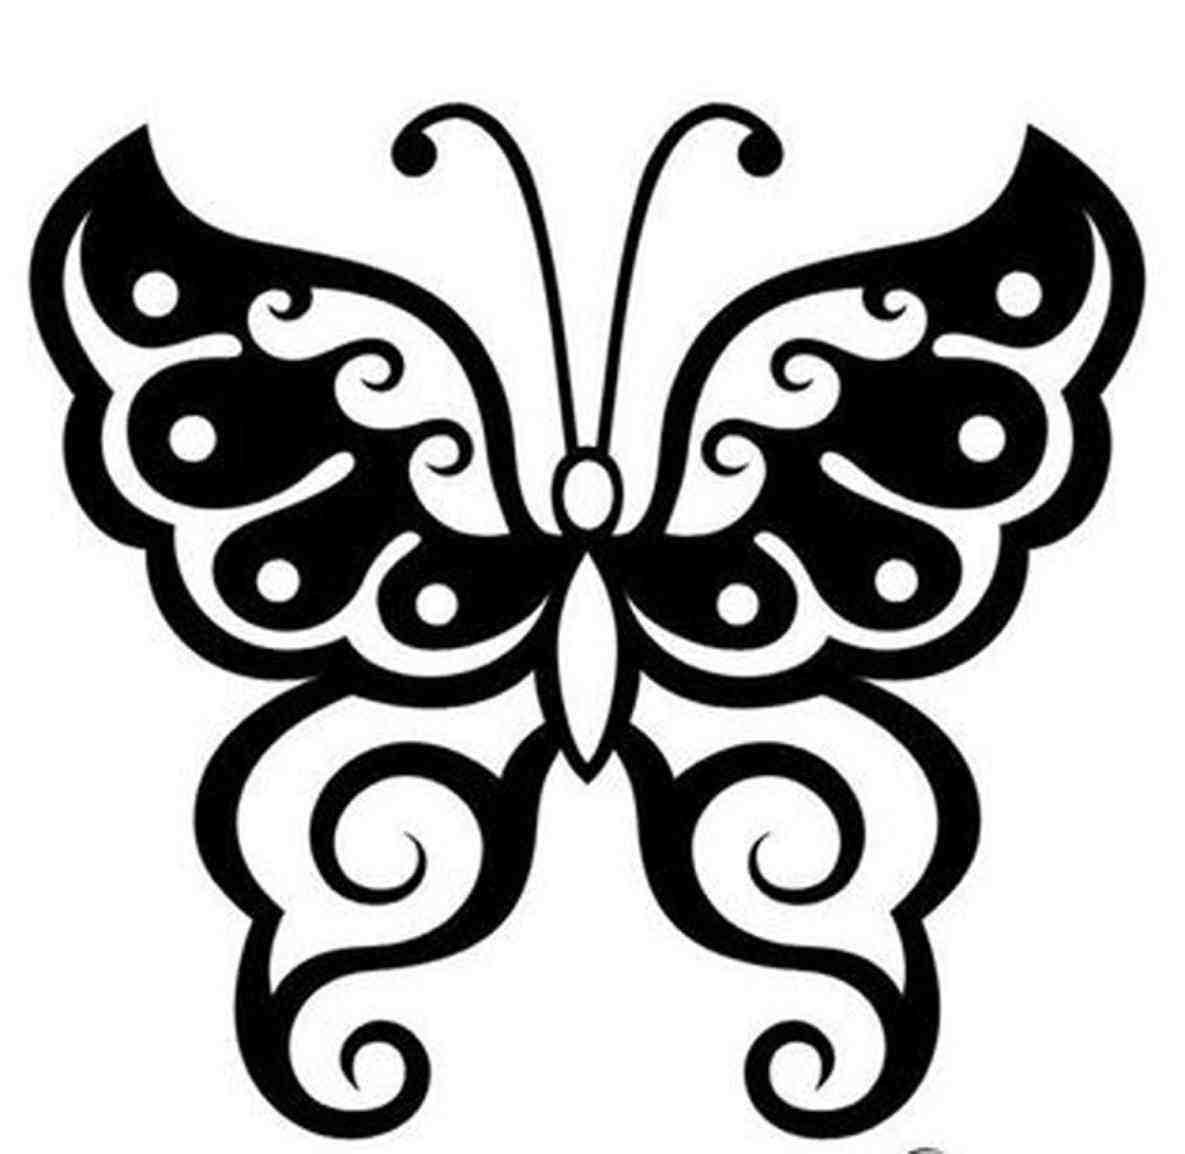 1185x1154 Cool Butterfly Designs To Draw